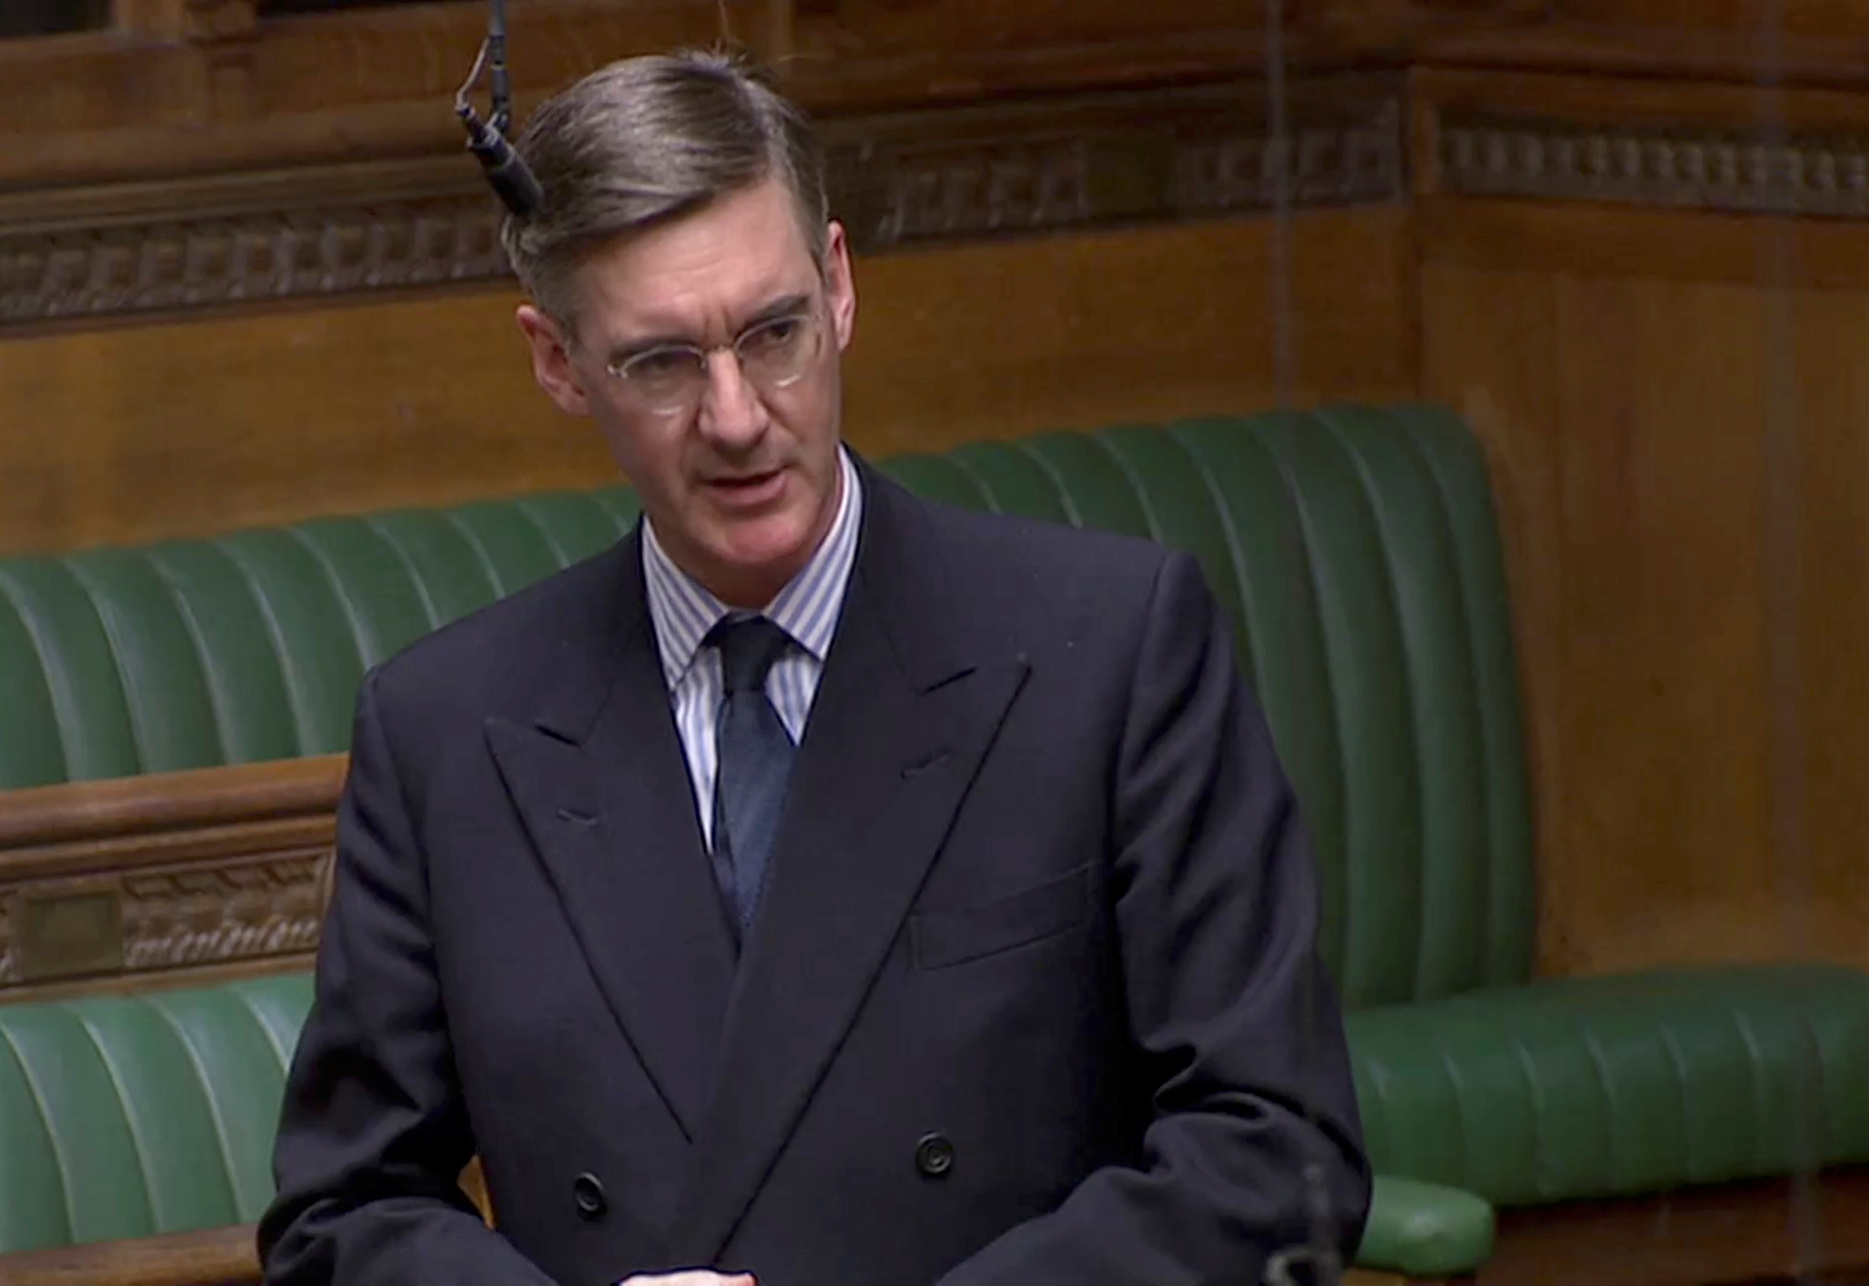 Britain's Conservative MP Jacob Rees-Mogg speaks in the Parliament in London, Britain, April 3, 2019, in this image taken from video.